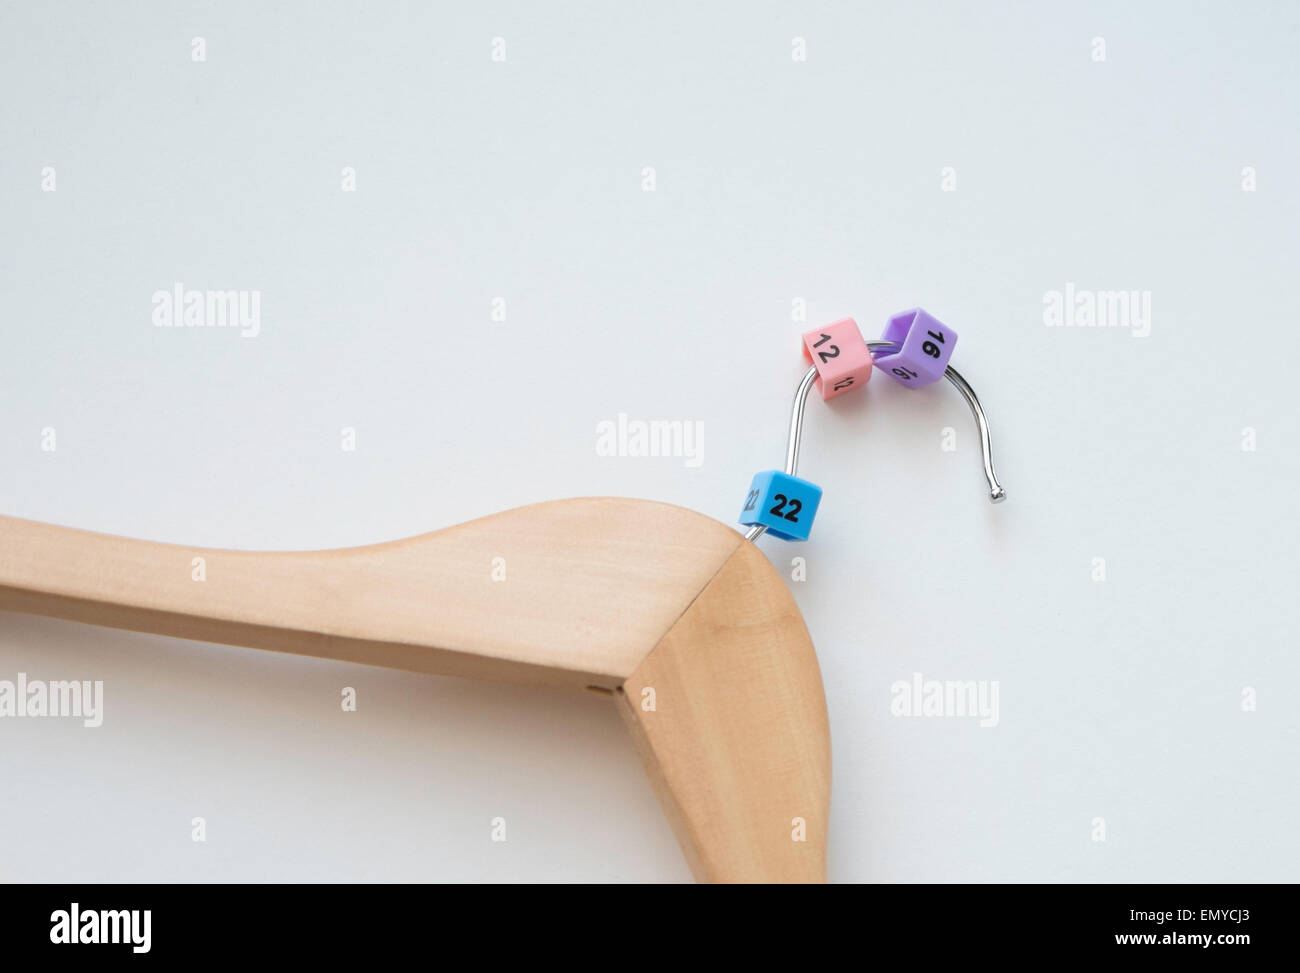 Different sizes on coathanger - Stock Image